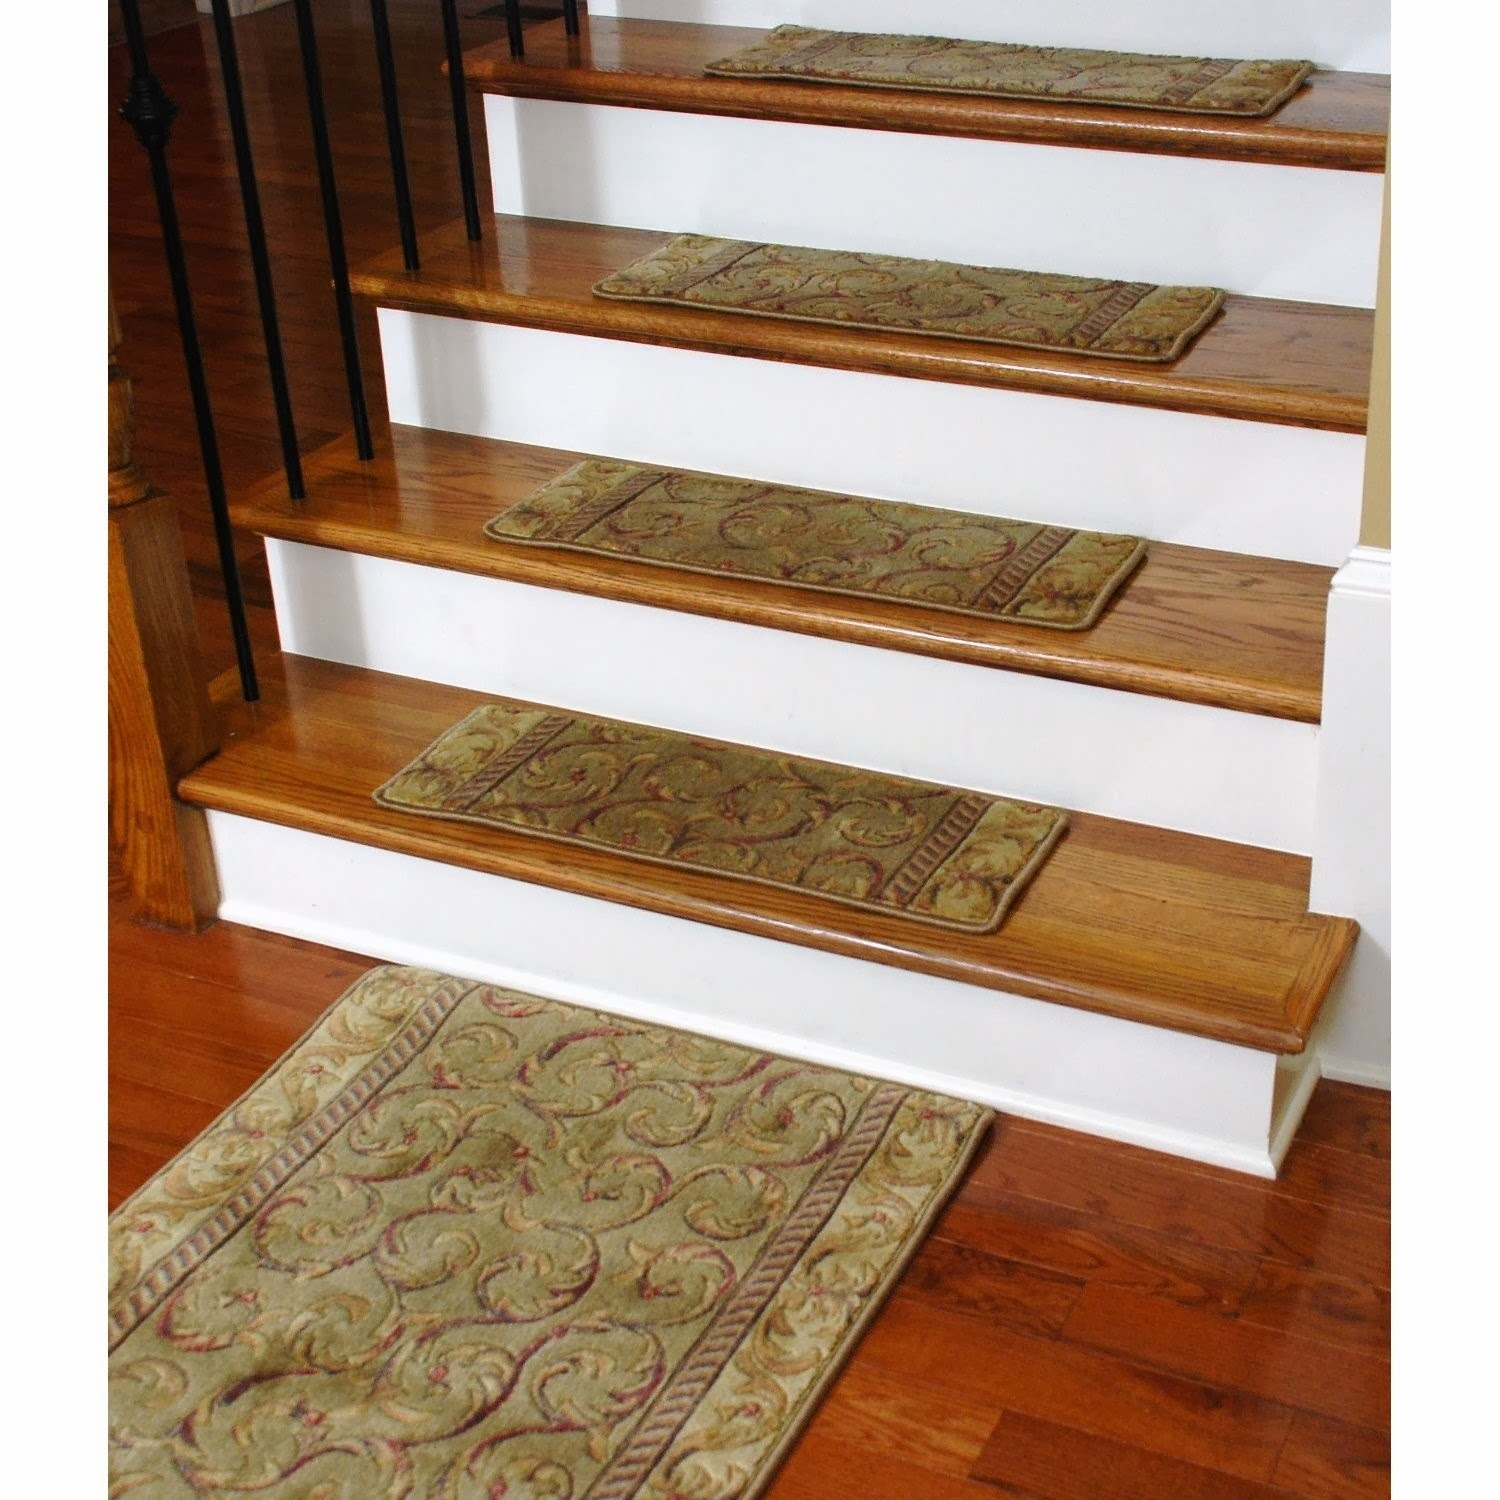 Popular Photo of Stair Tread Rugs For Carpet